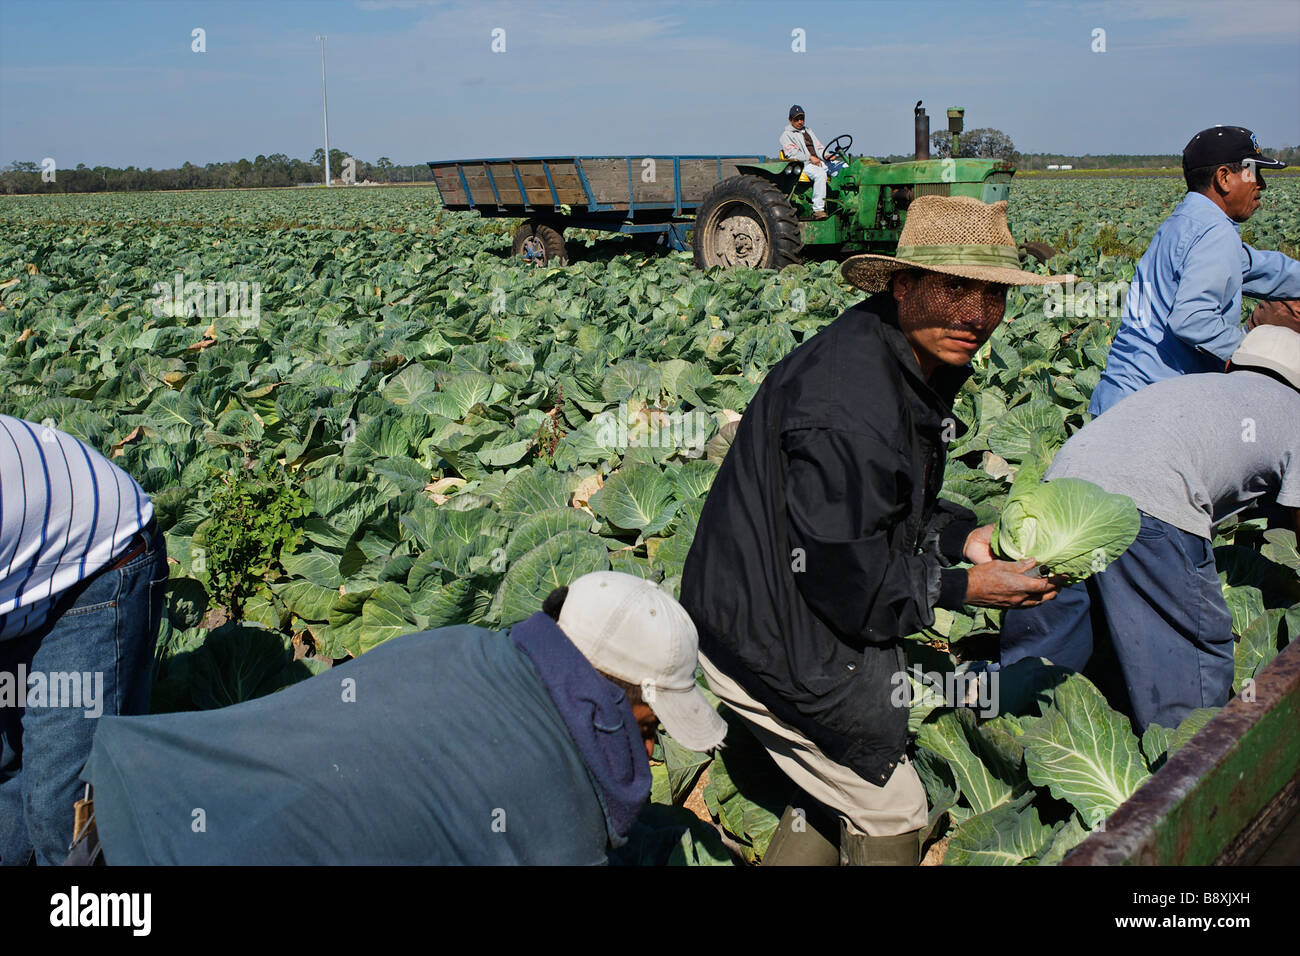 Migrant workers Florida USA - Stock Image